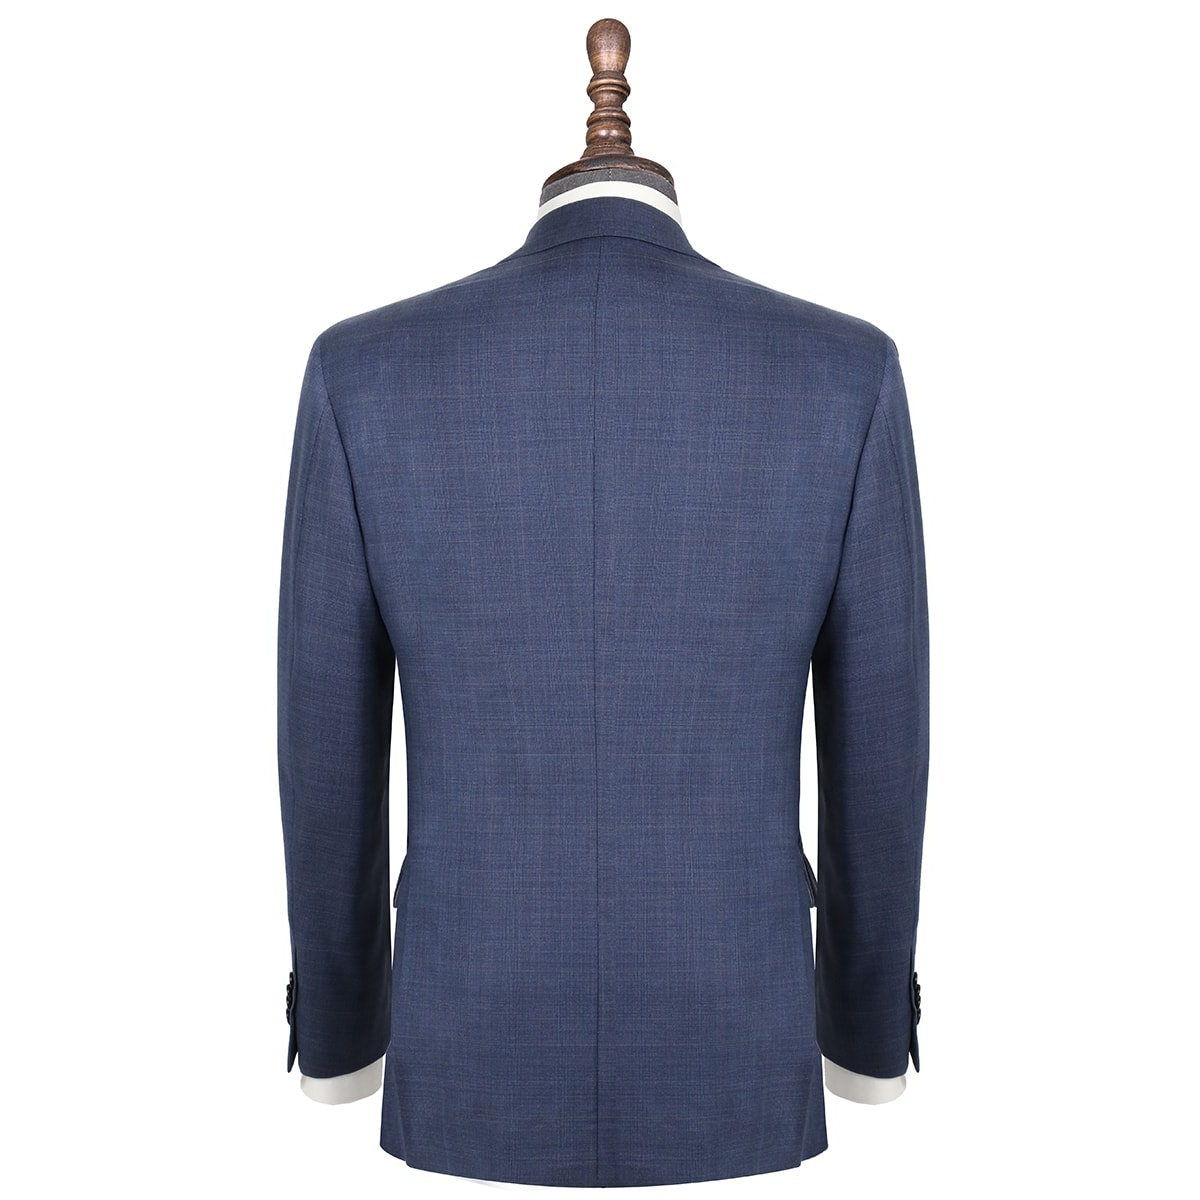 InStitchu Collection Stubbs Blue Glen Plaid Wool Jacket